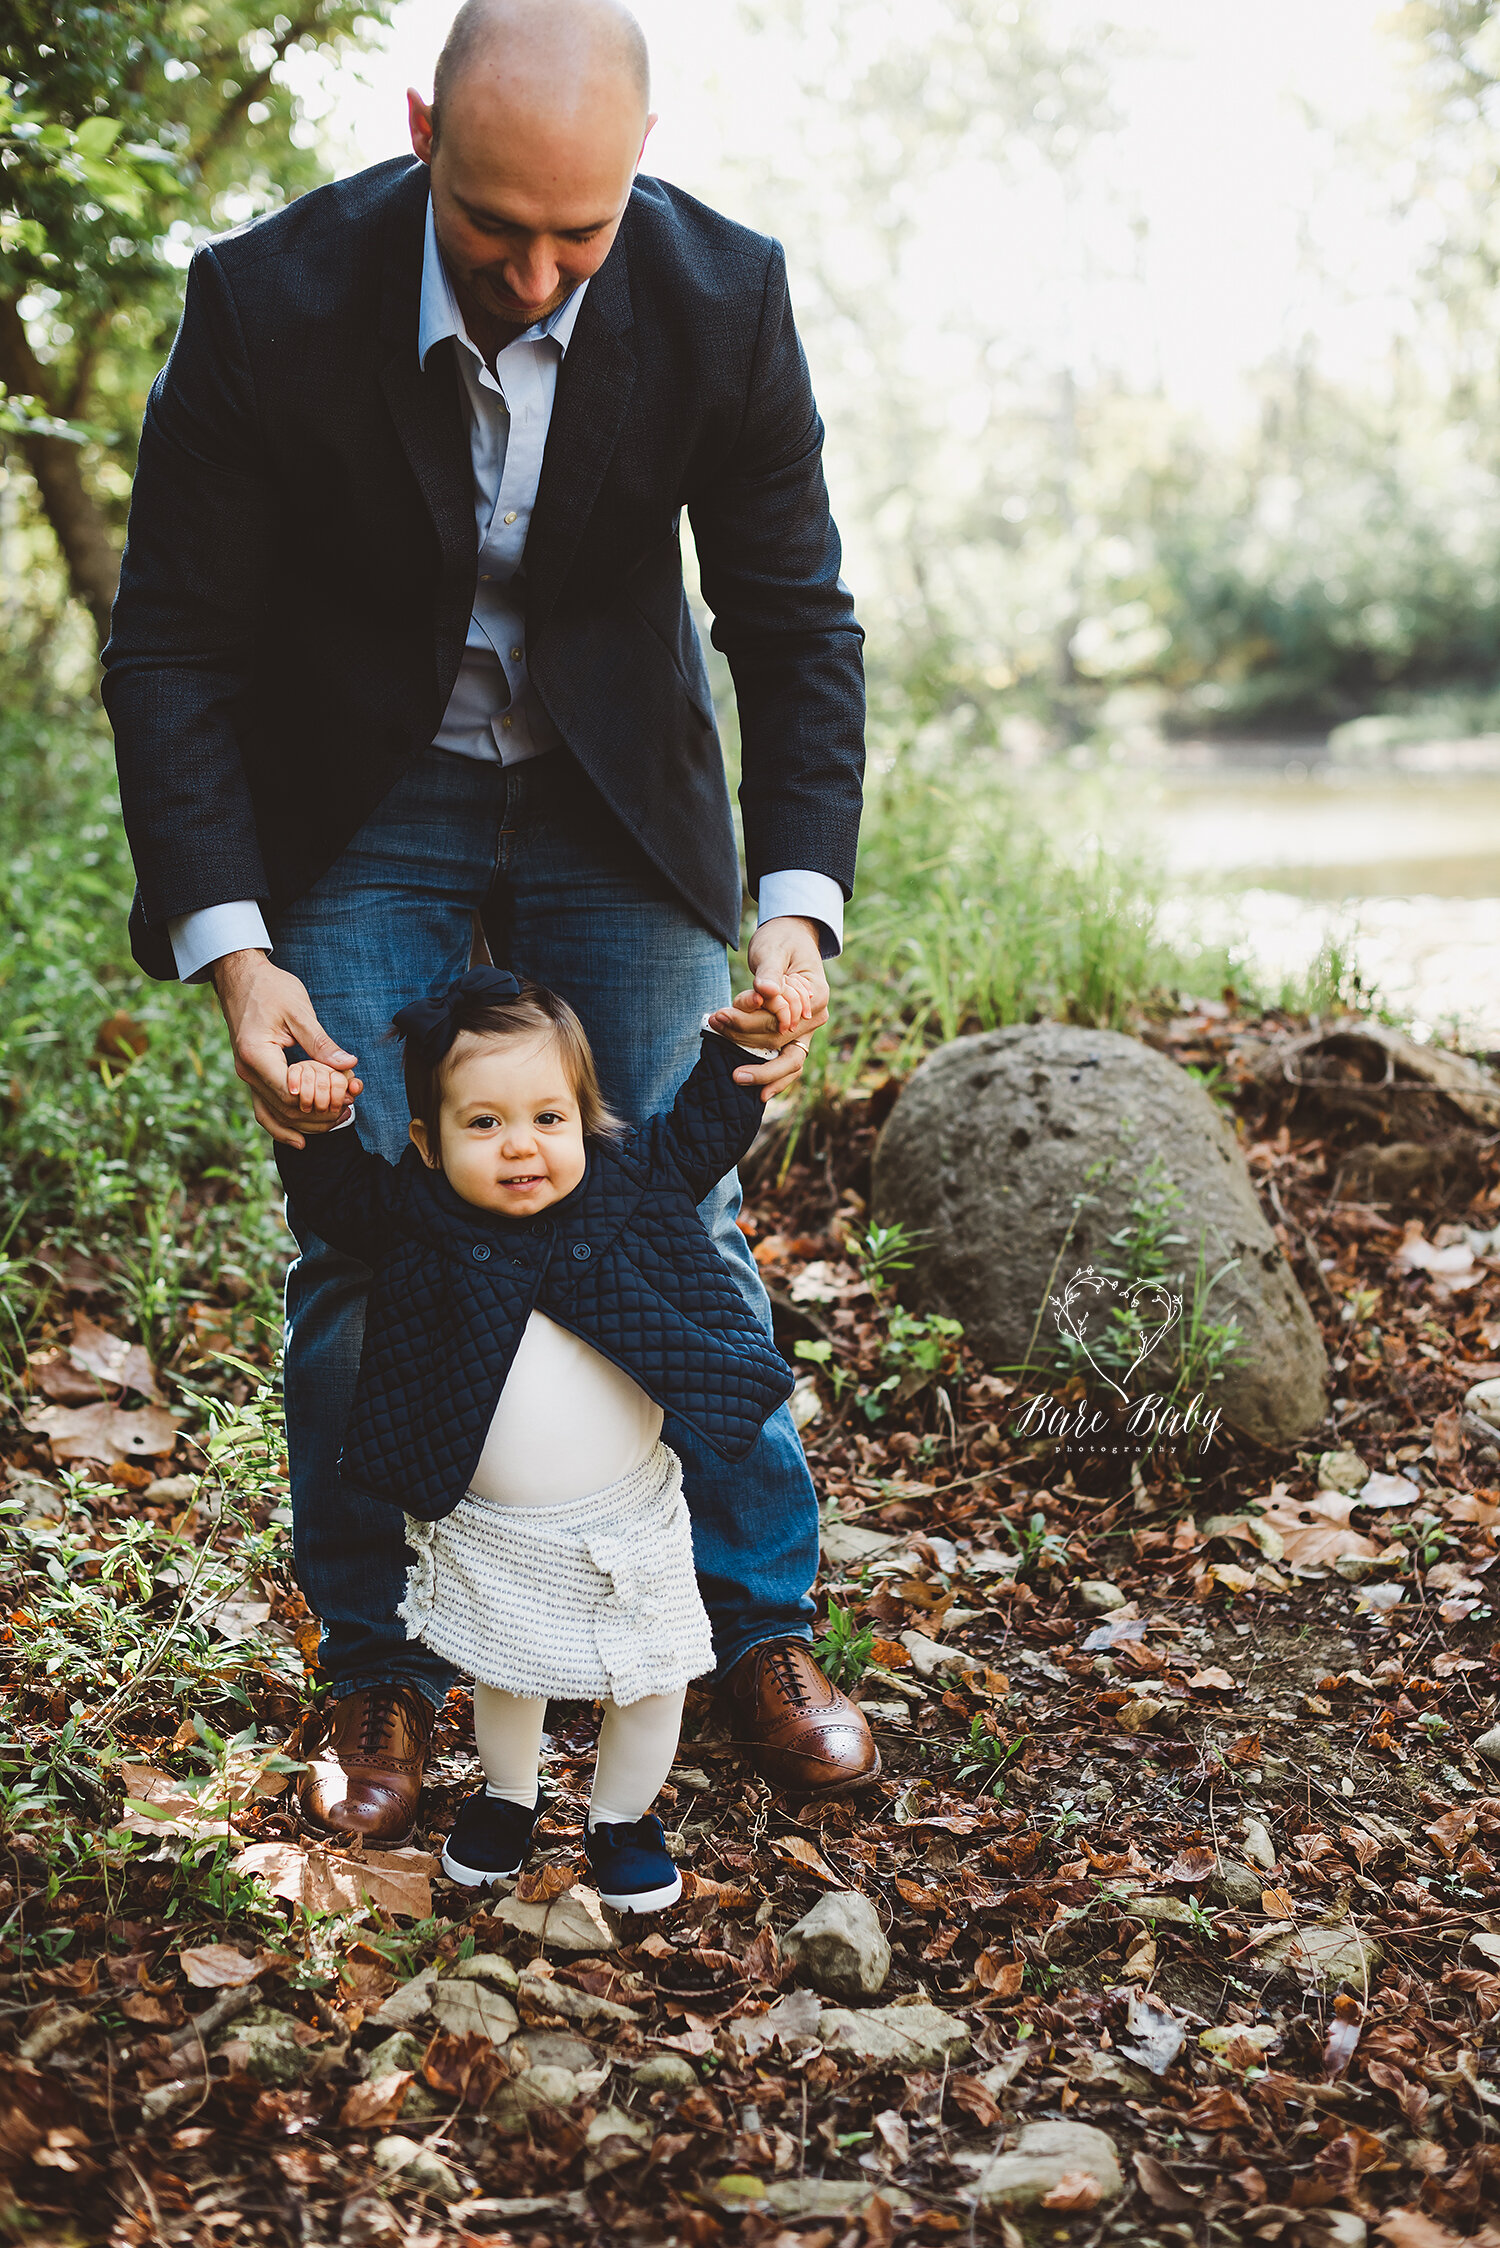 best-family-photographer-columbus-barebabyphotography.jpg